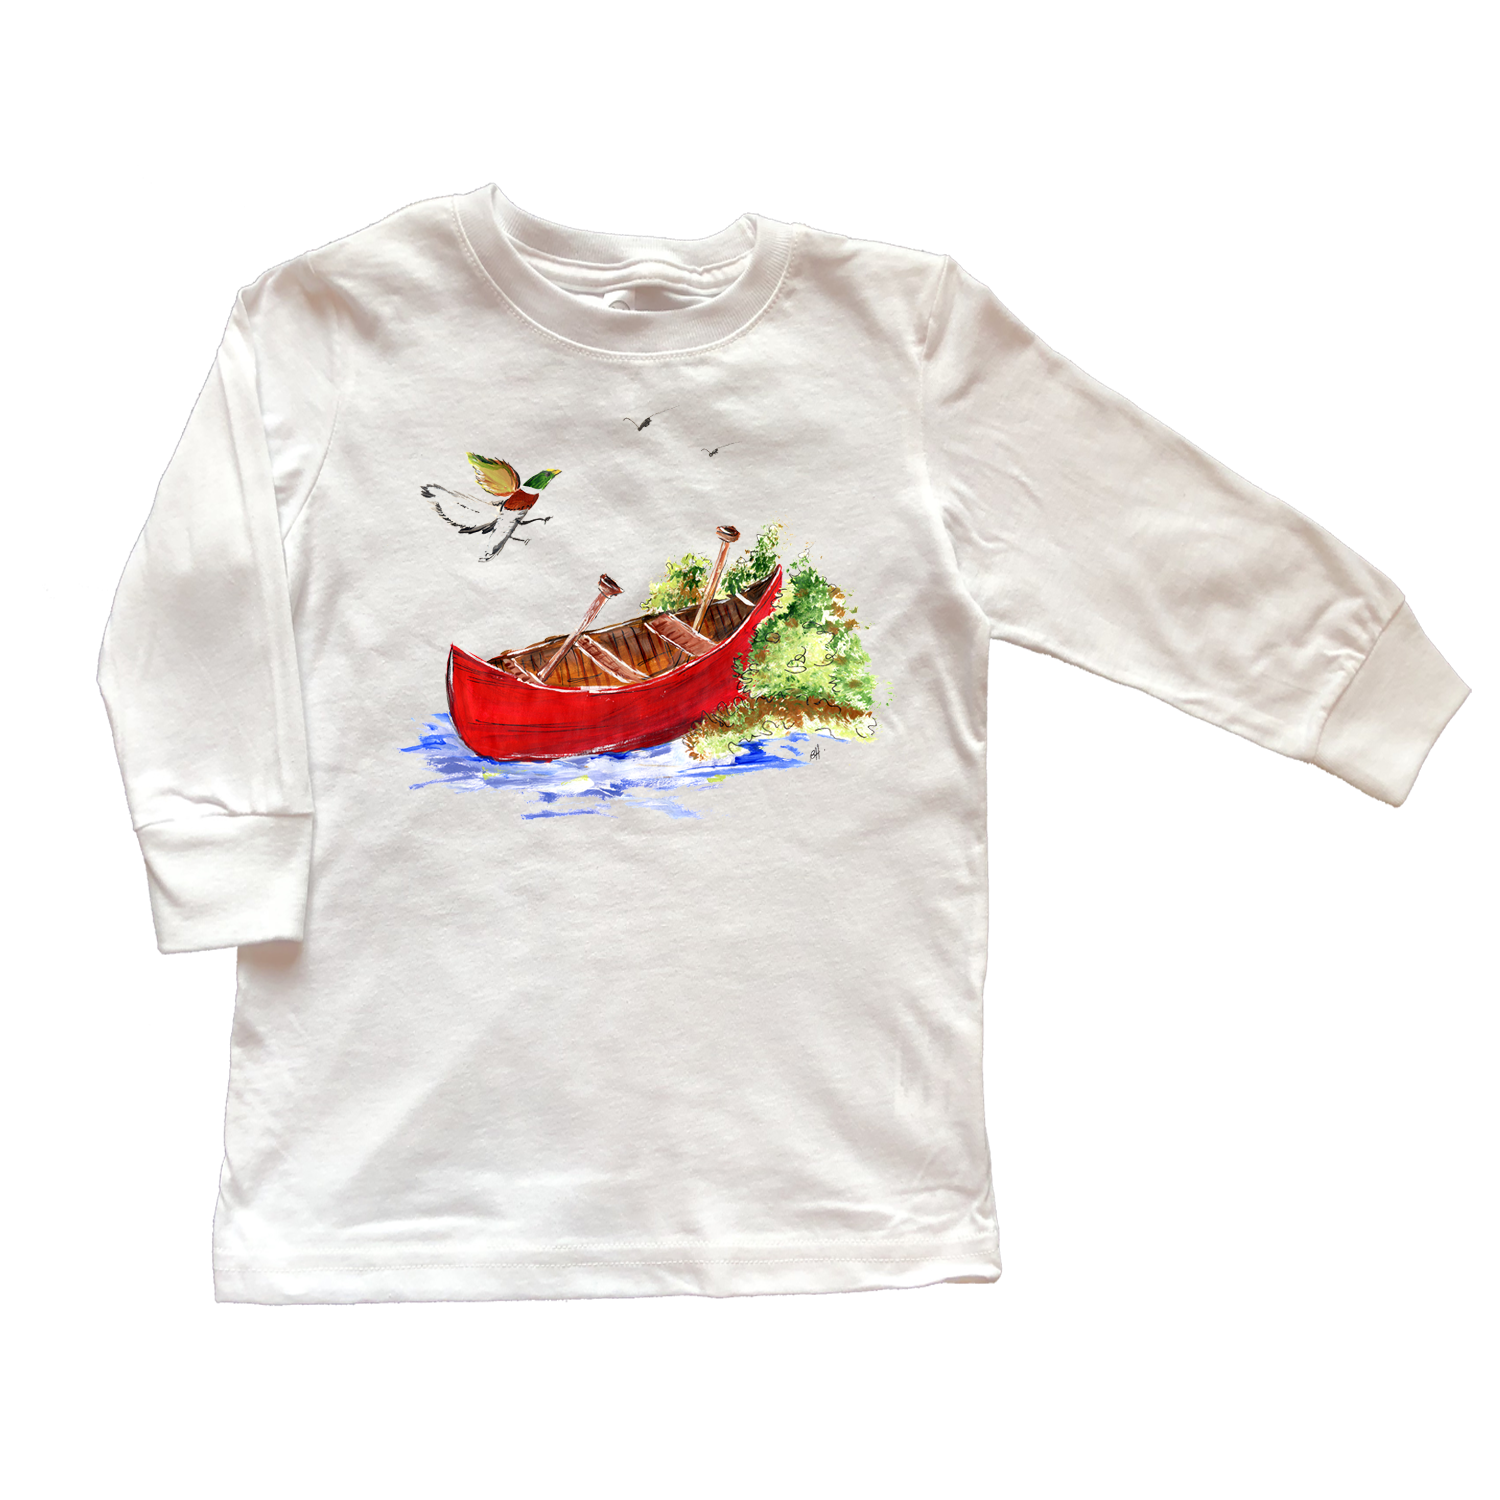 Boys Tee Shirt Long Sleeve TS492